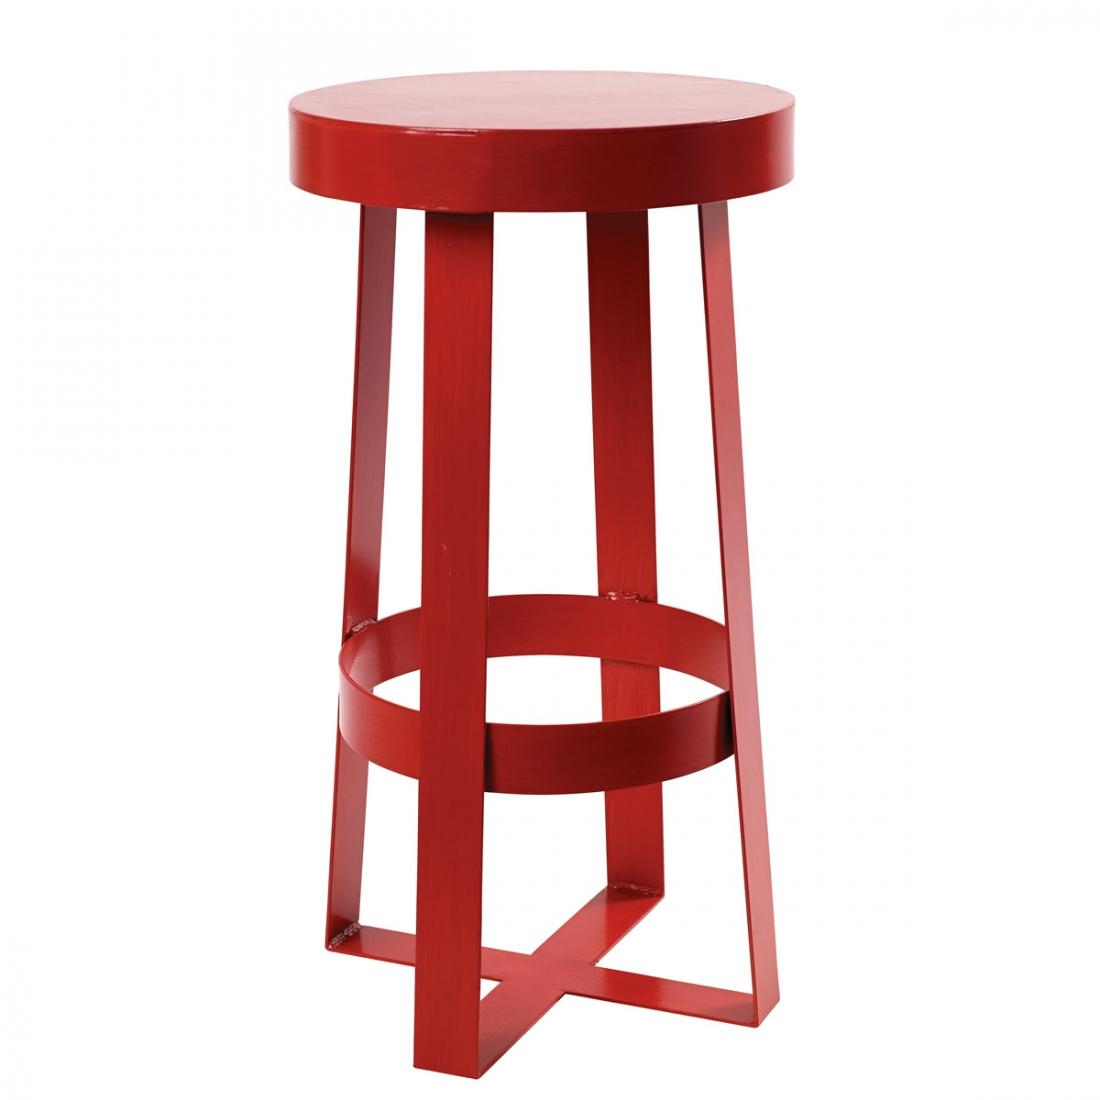 Tabouret de bar design snello serax zendart design for Siege de bar design